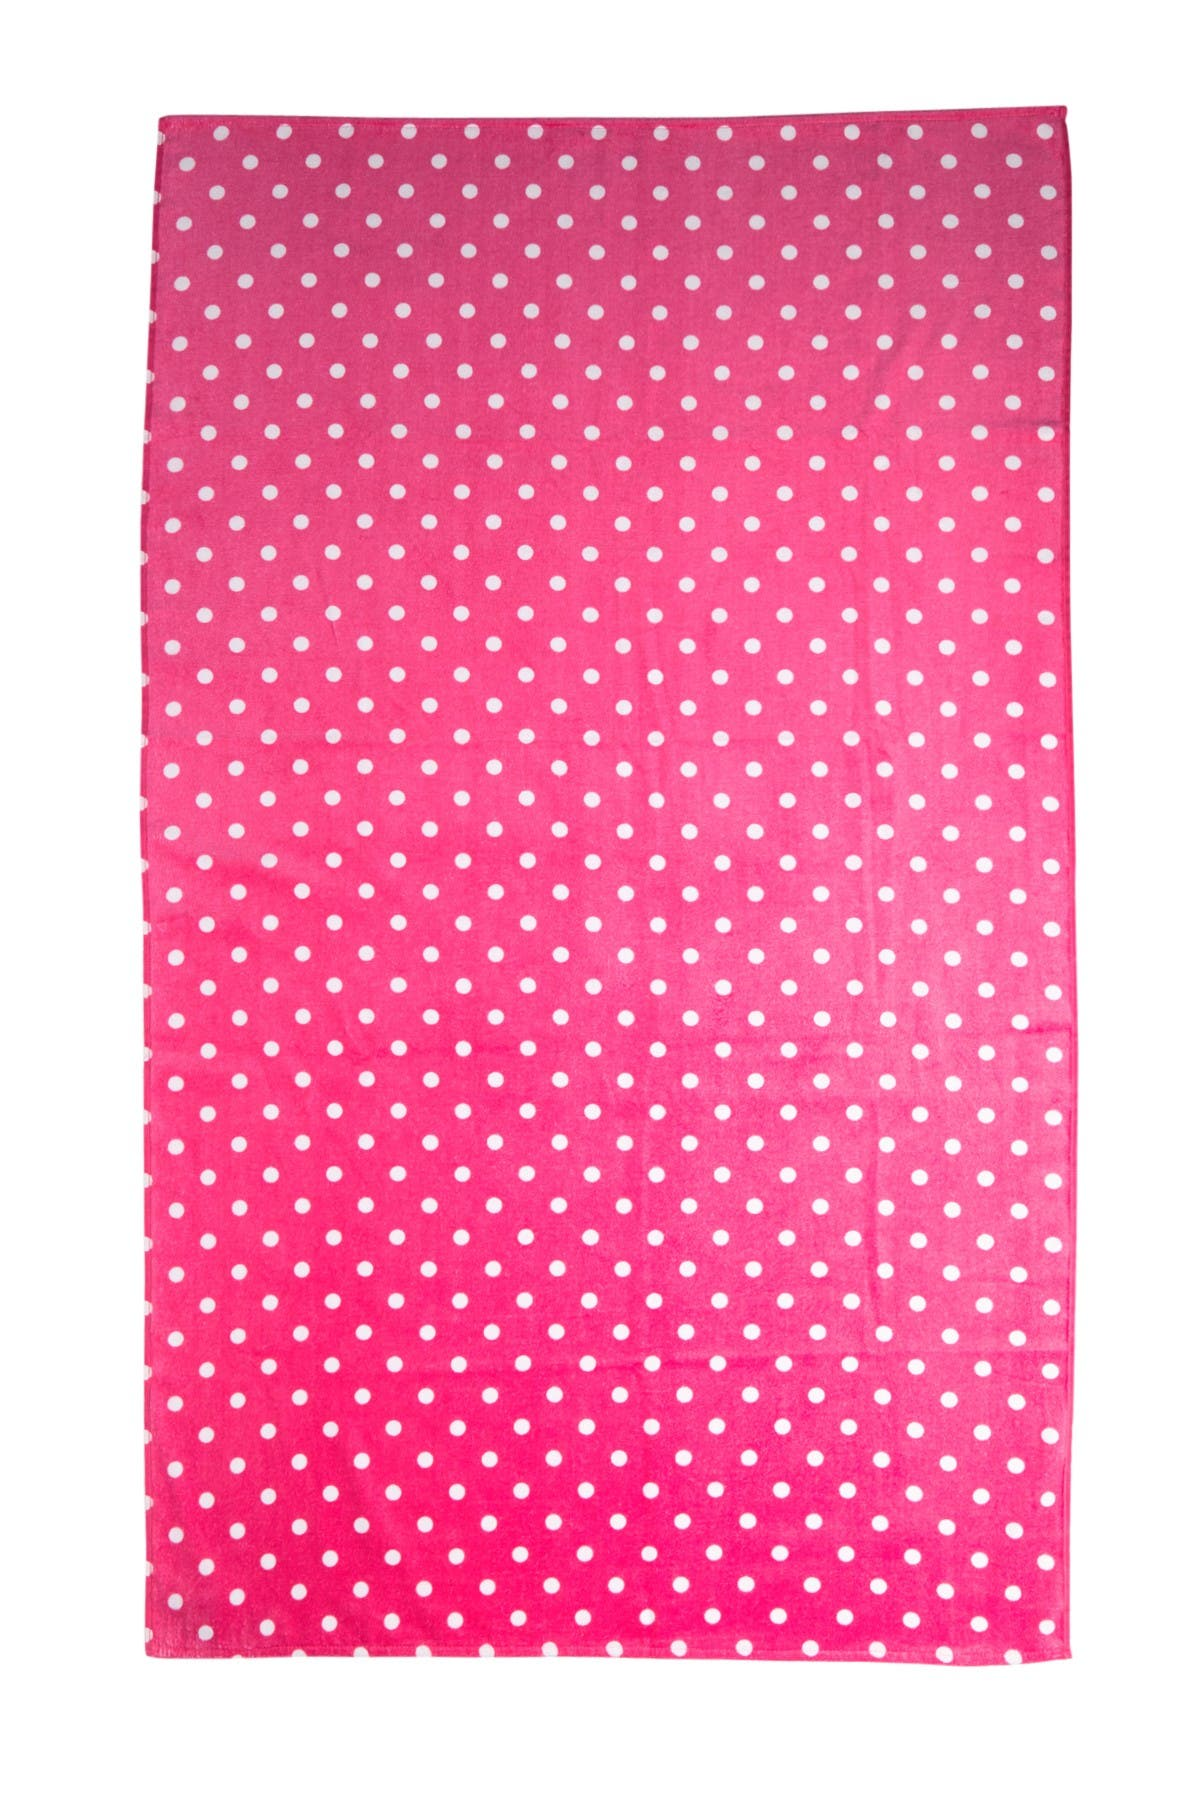 Image of Apollo Towels Polka Dot Beach Towel - Multi